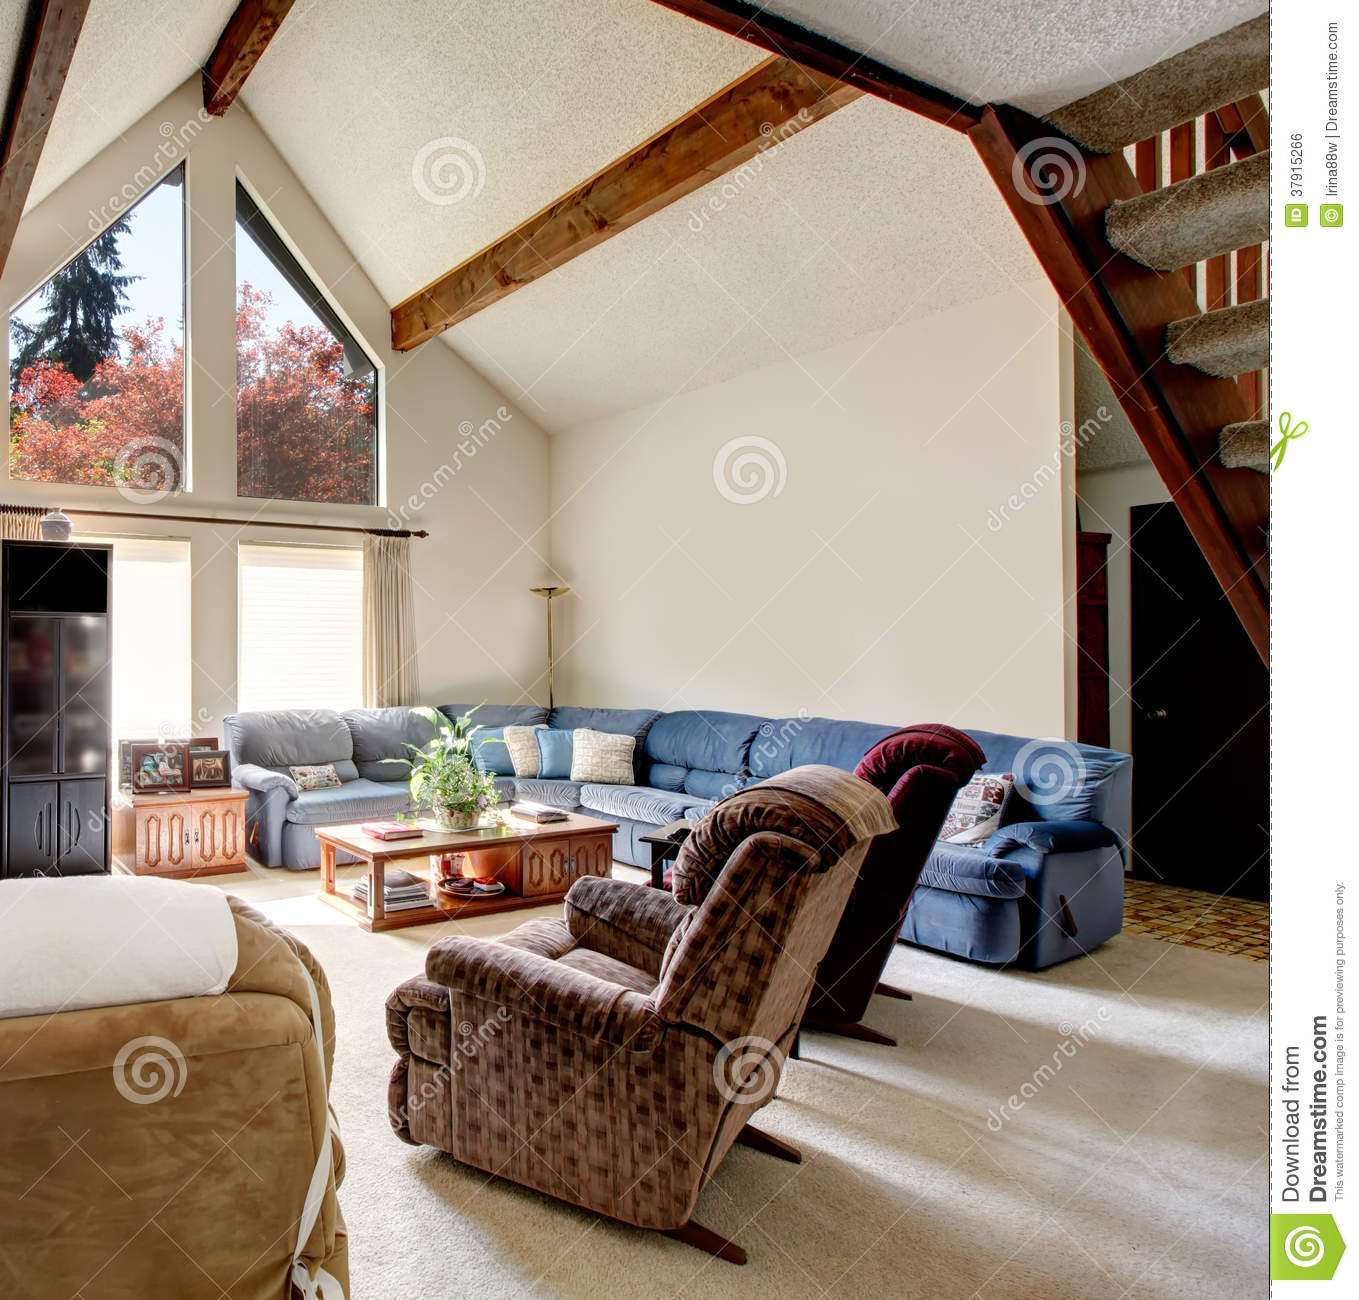 Big Log Cabin Style Living Room With Rocky Wall Design Stock